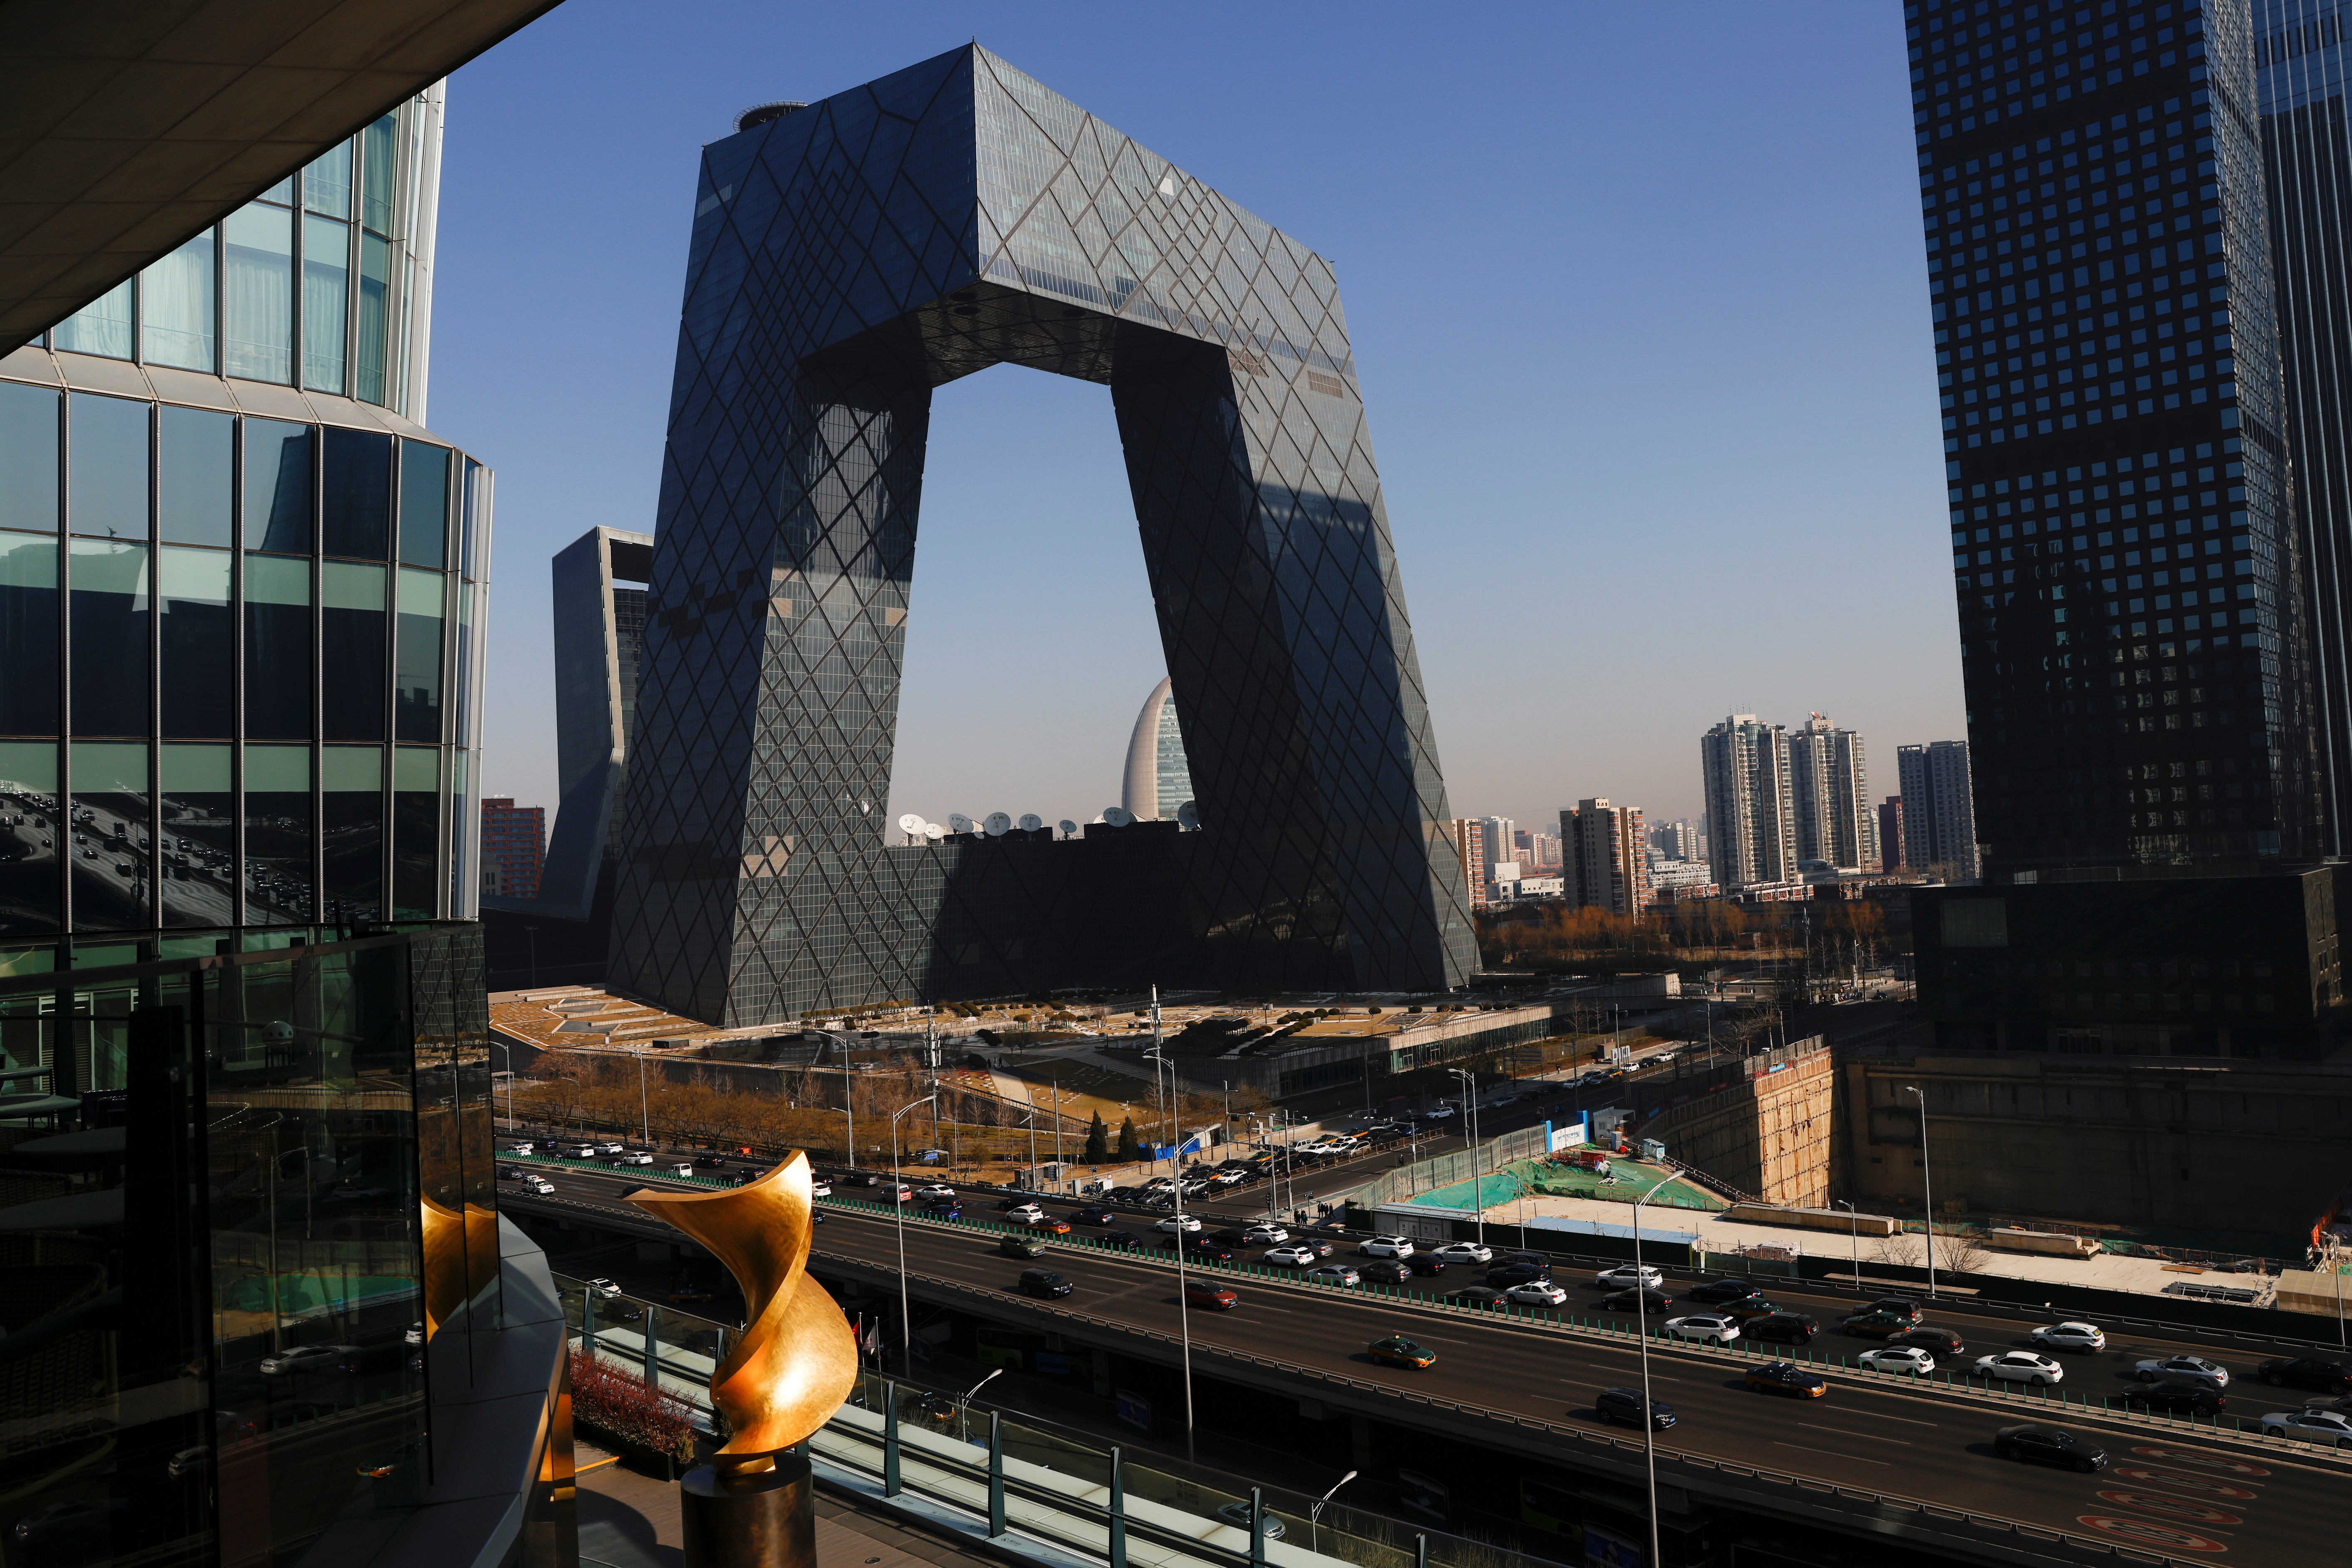 Cars travel past the CCTV headquarters, the home of Chinese state media outlet CCTV and its English-language sister channel CGTN, in Beijing, China February 5, 2021. REUTERS/Carlos Garcia Rawlins/File Photo